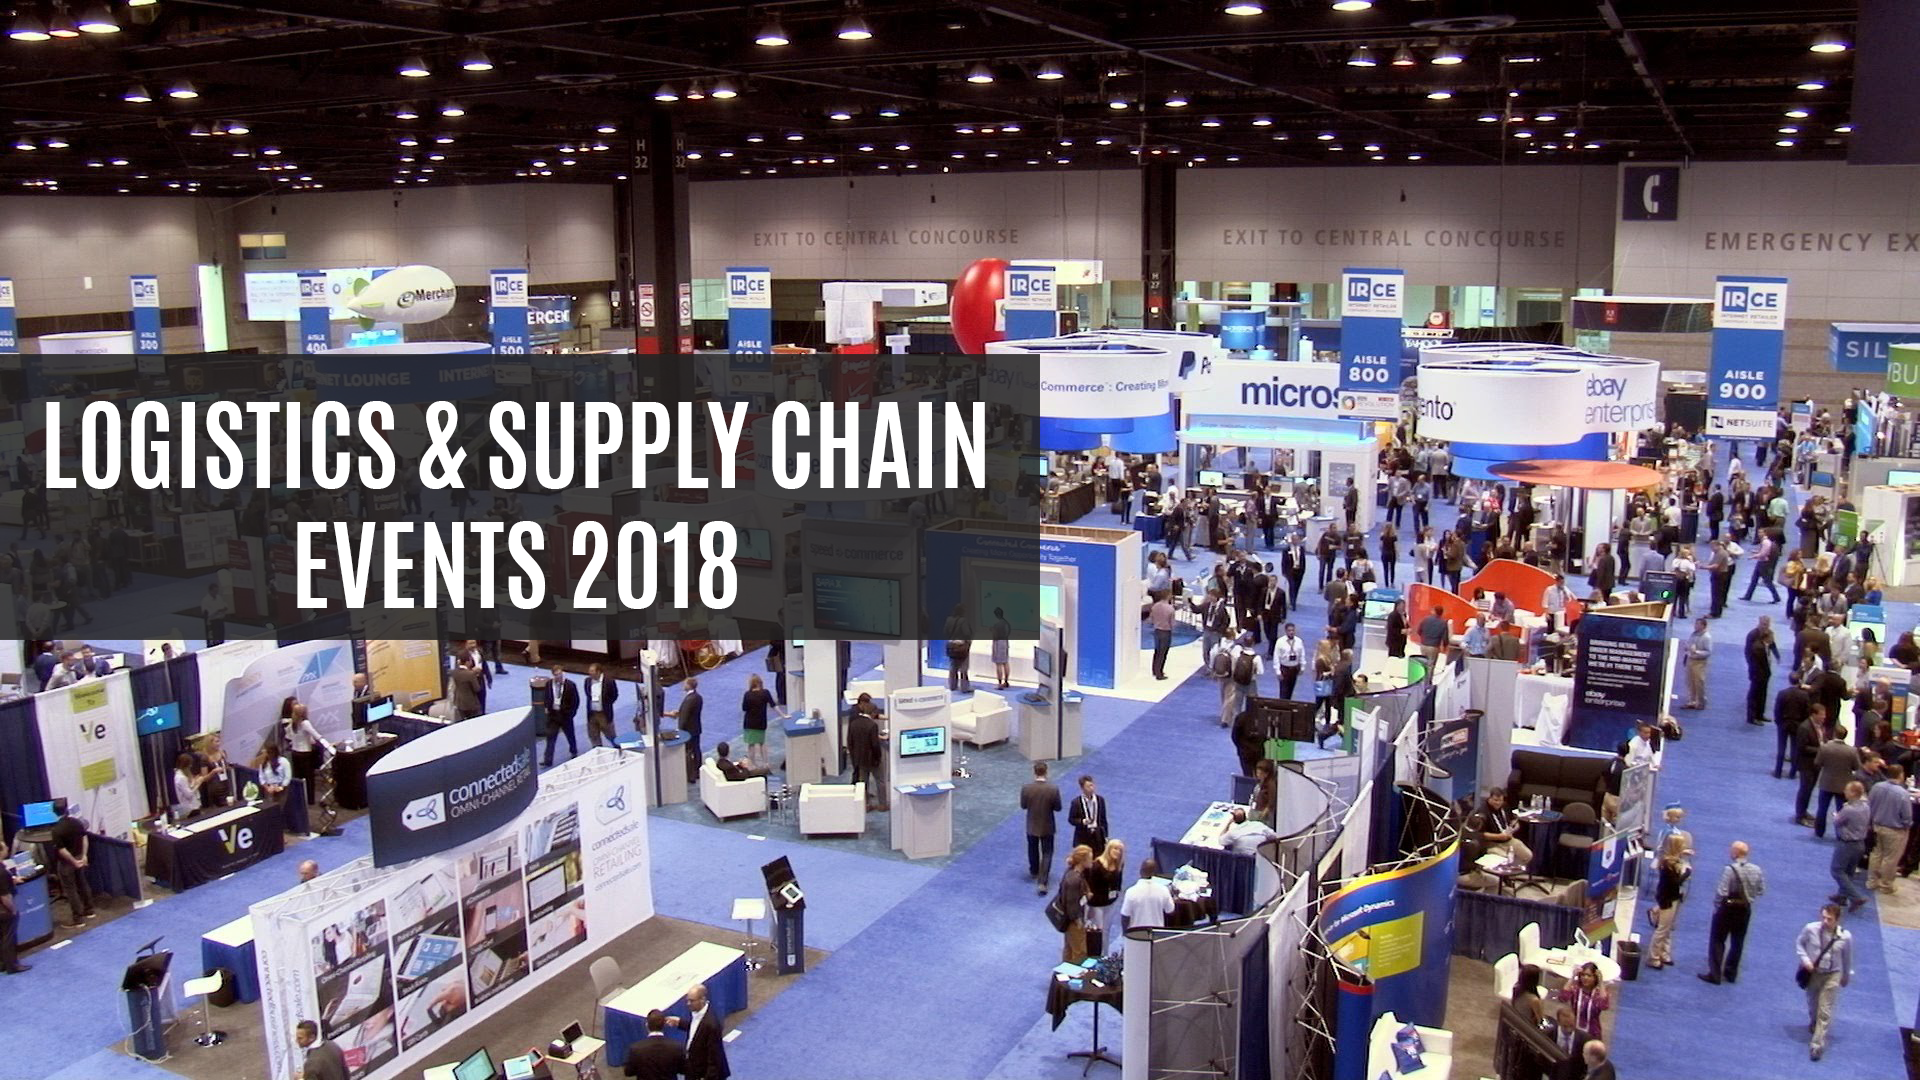 Best Logistics & Supply Chain Shows To Attend In 2018